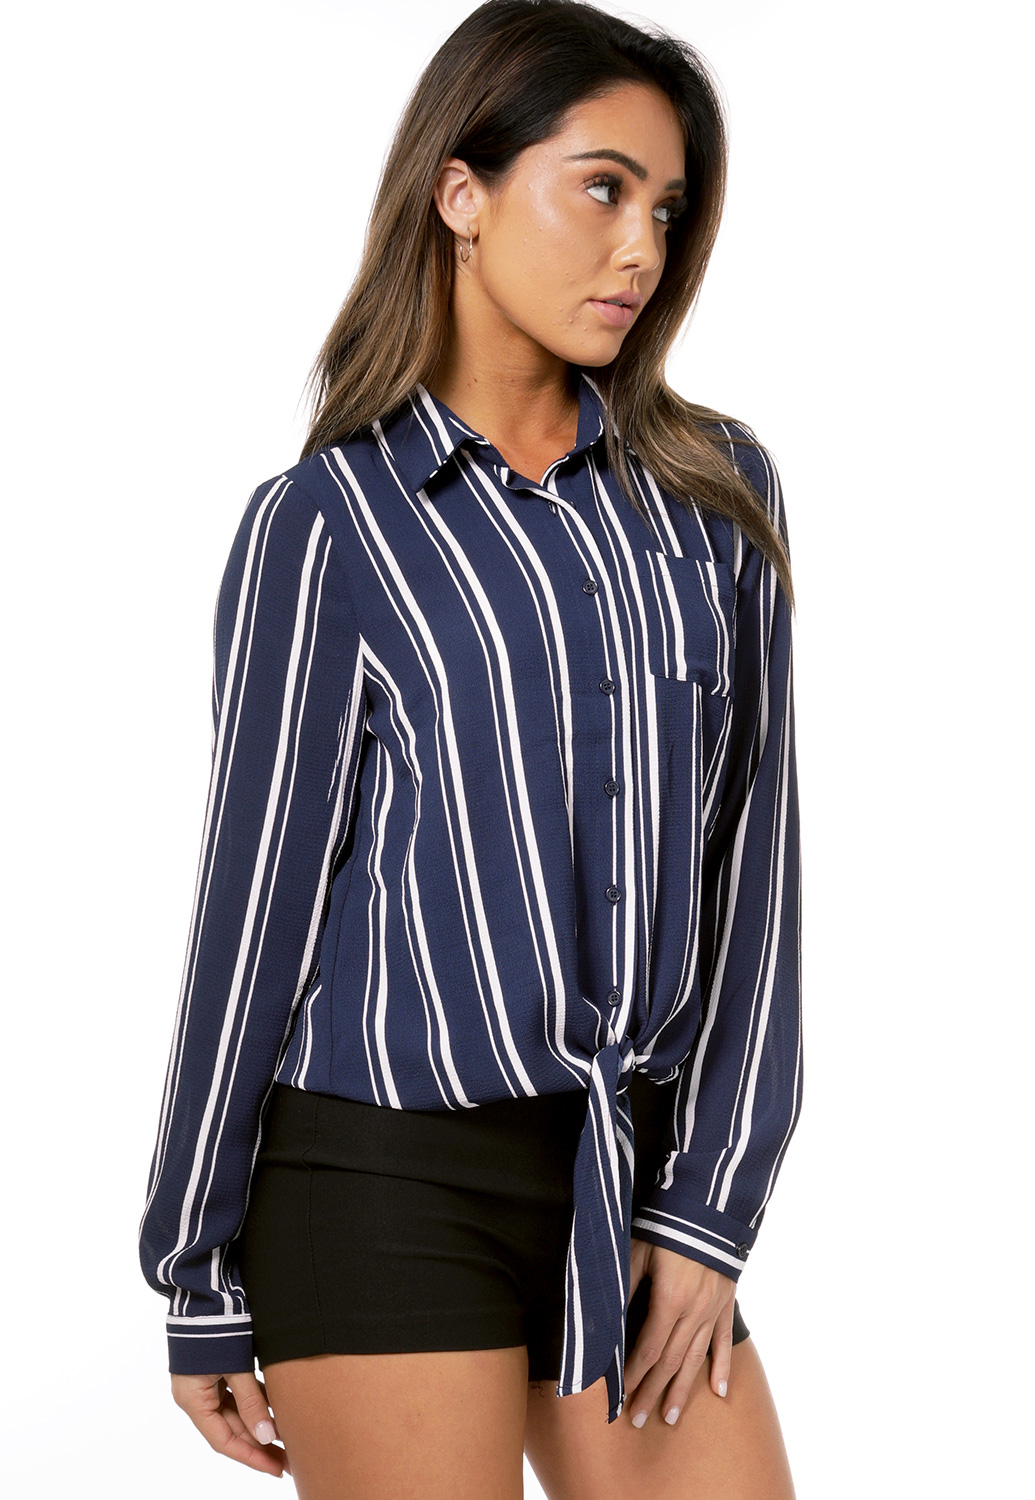 Pinstriped Dressy Top